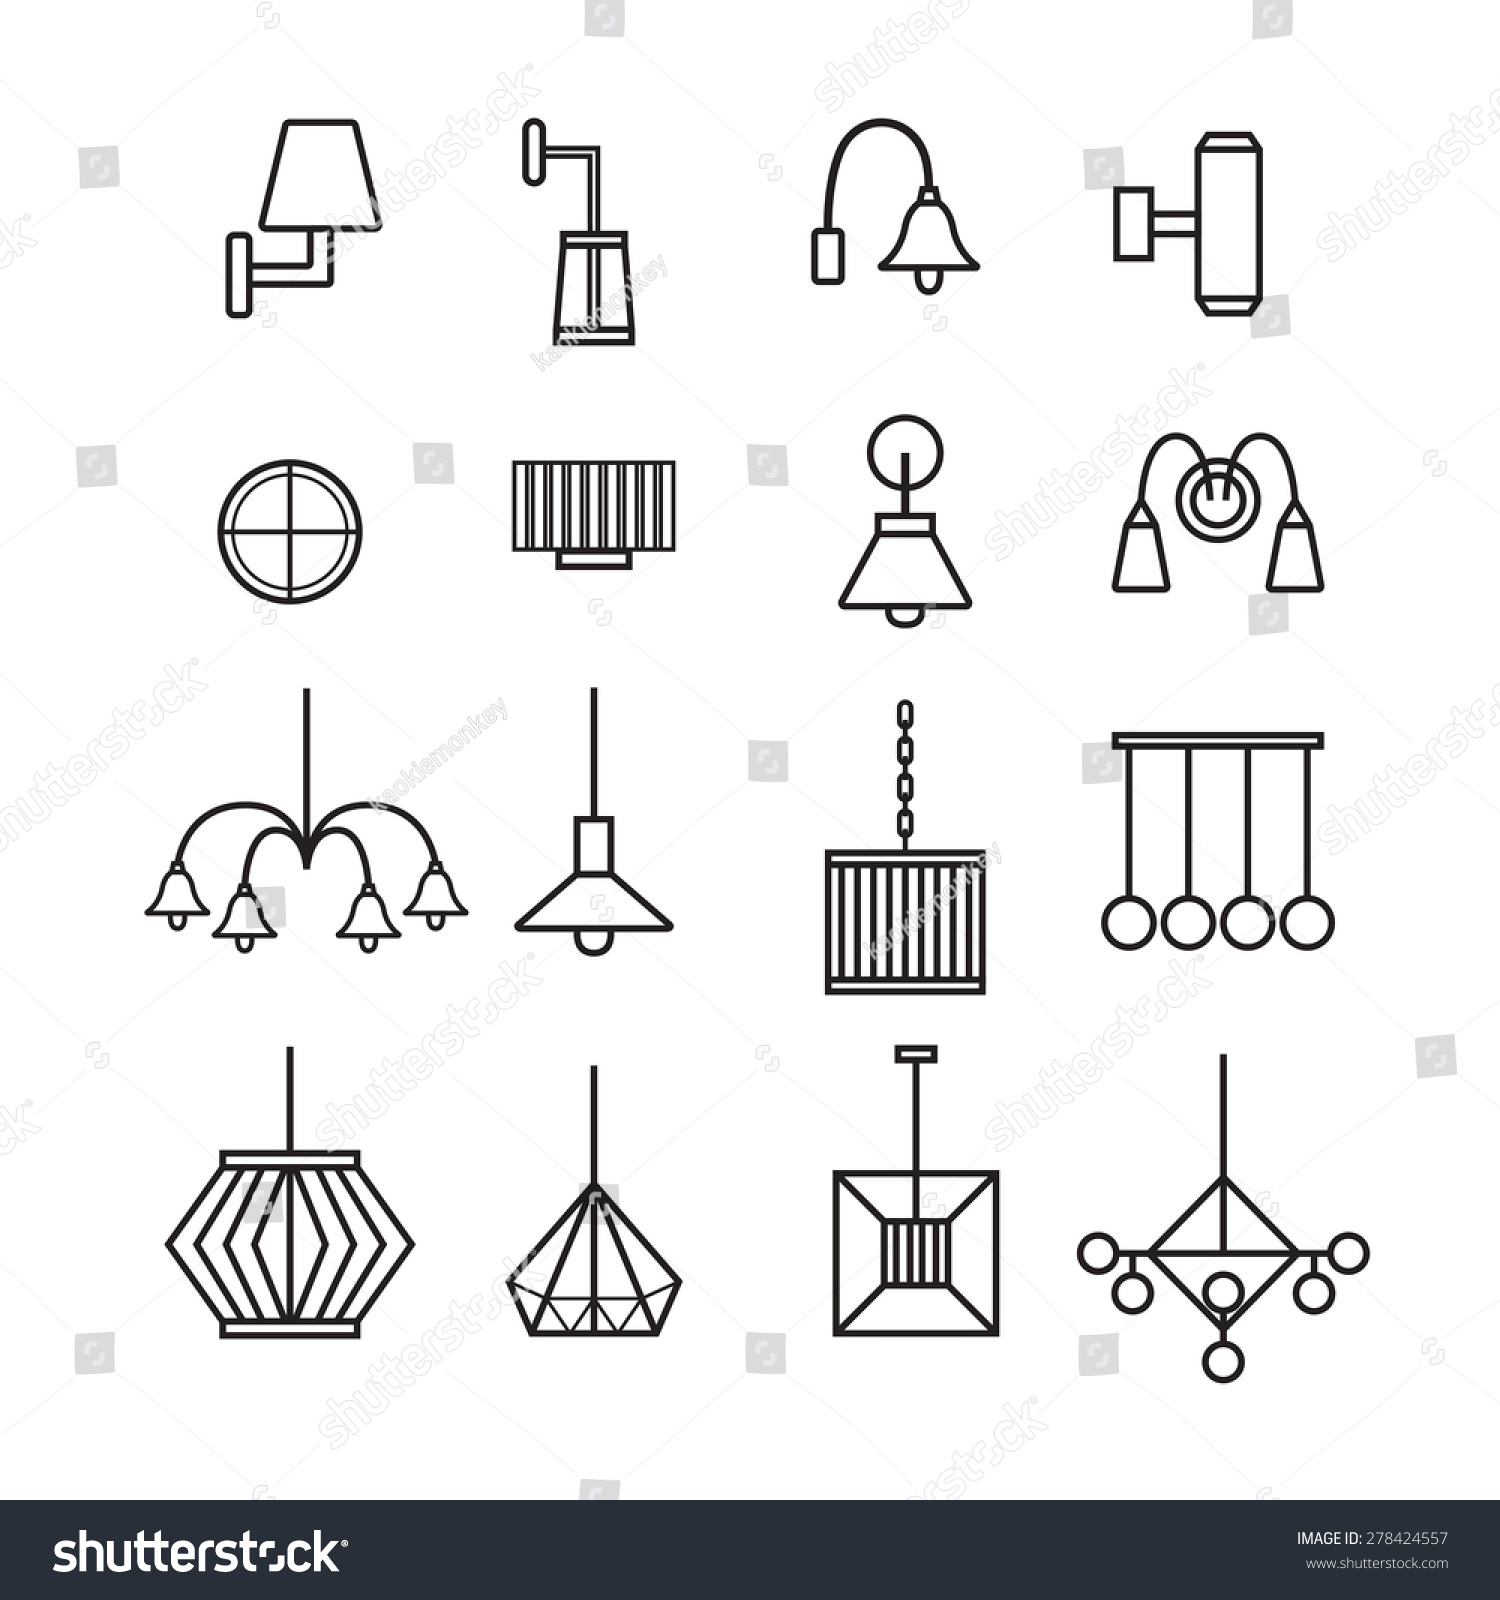 Wall Lamps Vector : Lamp Vector,Wall Lamp,Chandelier, Decorate Lamp Icon Set - 278424557 : Shutterstock